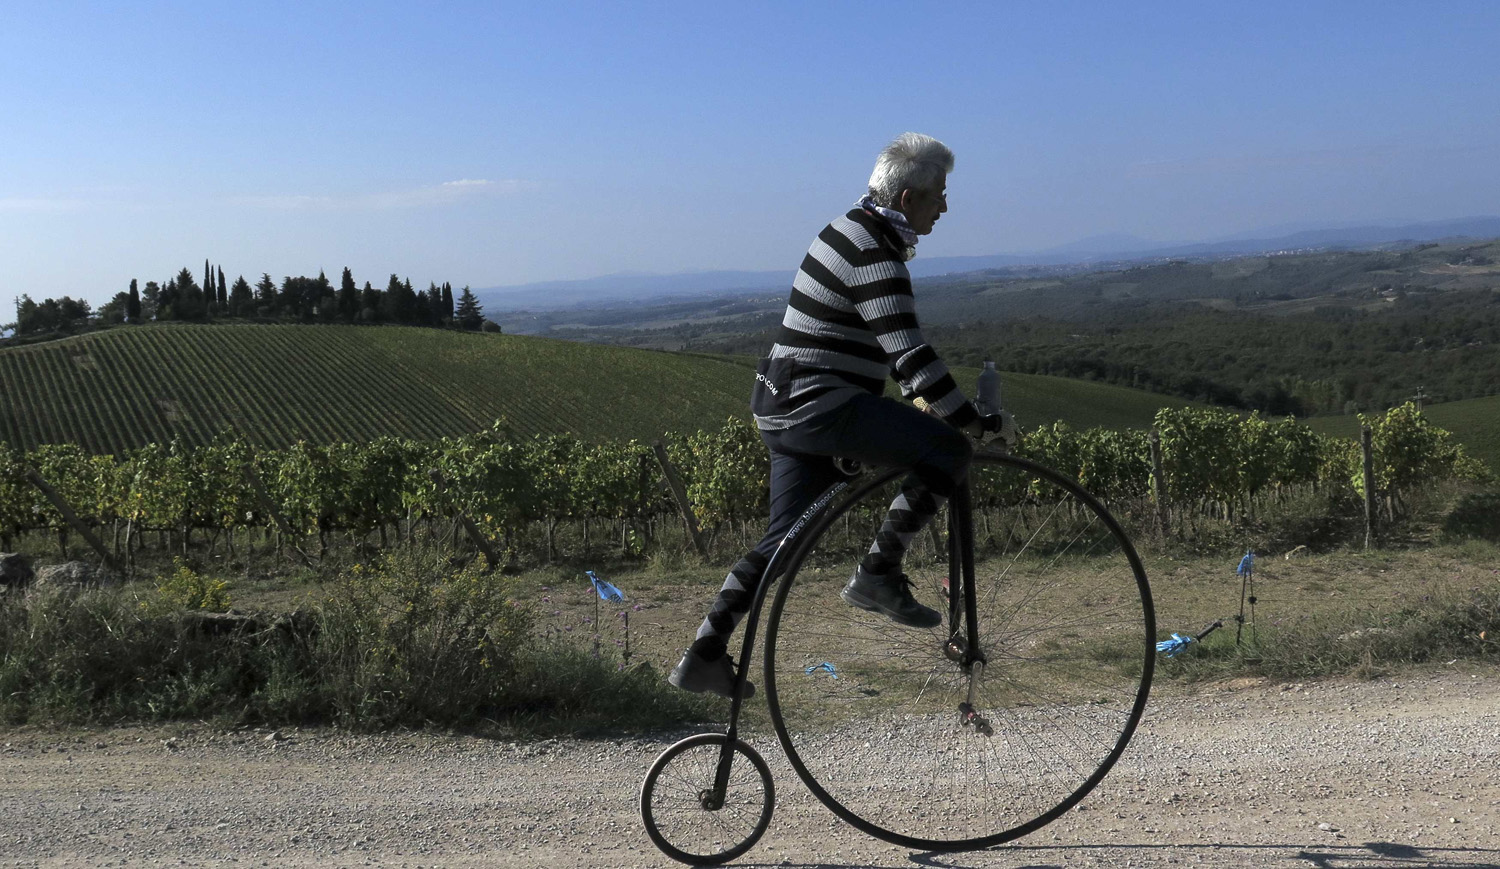 A cyclist rides on a high wheel bicycle to practices a day before the   Eroica  cycling race for old bikes in Tuscany, Italy, Oct. 4, 2014.